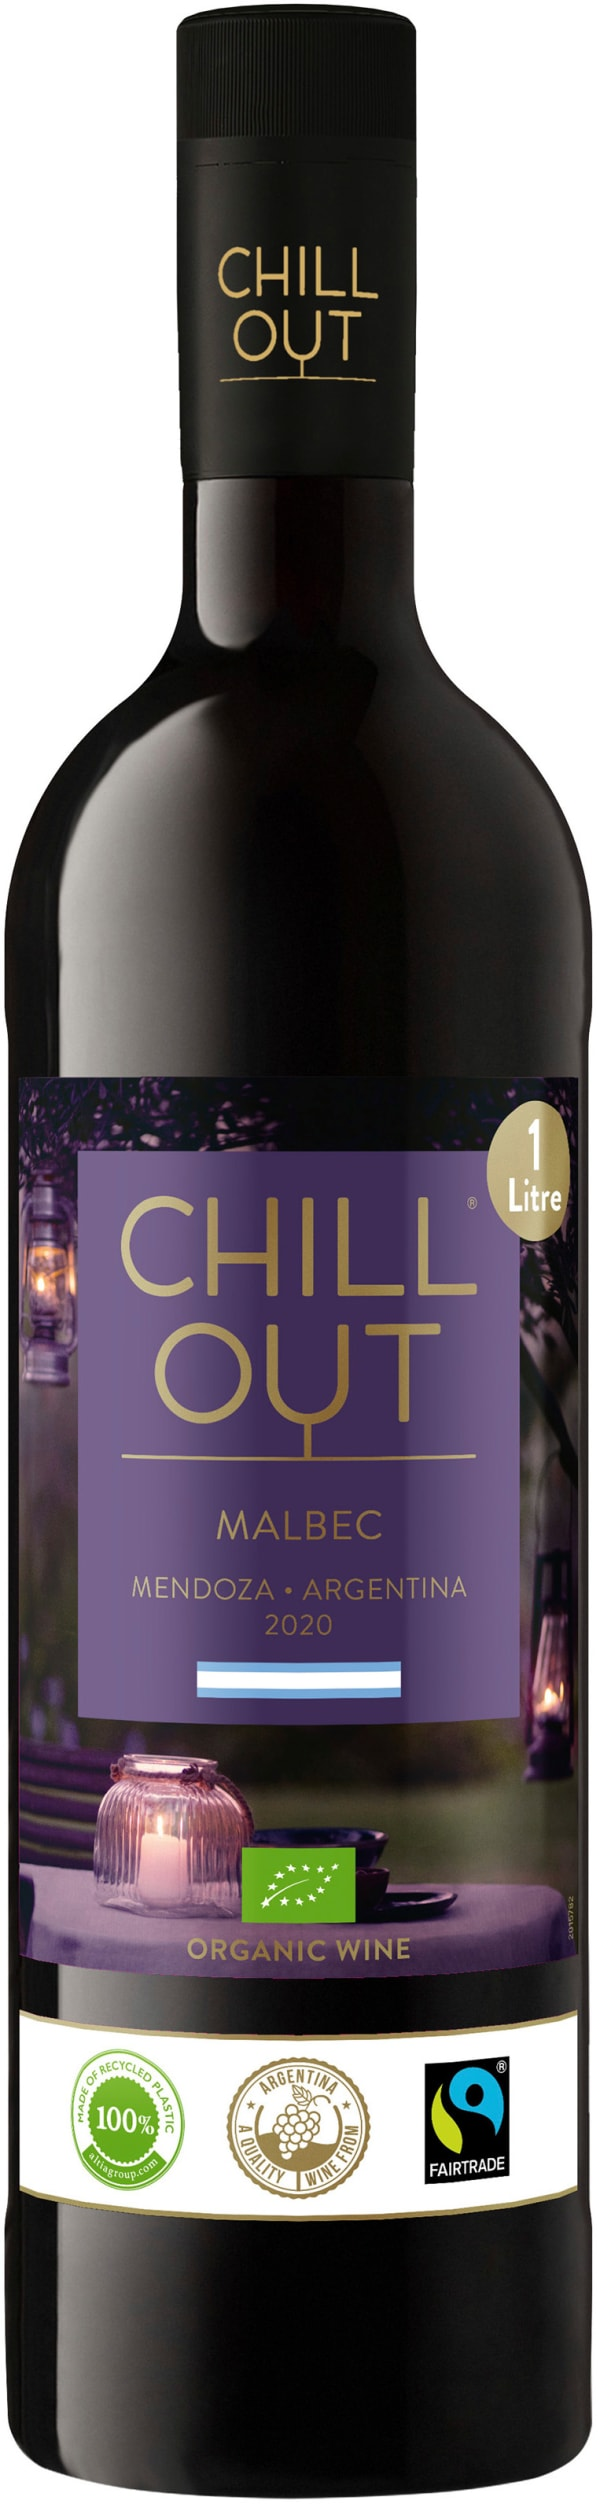 Chill Out Malbec Argentina 2018 plastic bottle